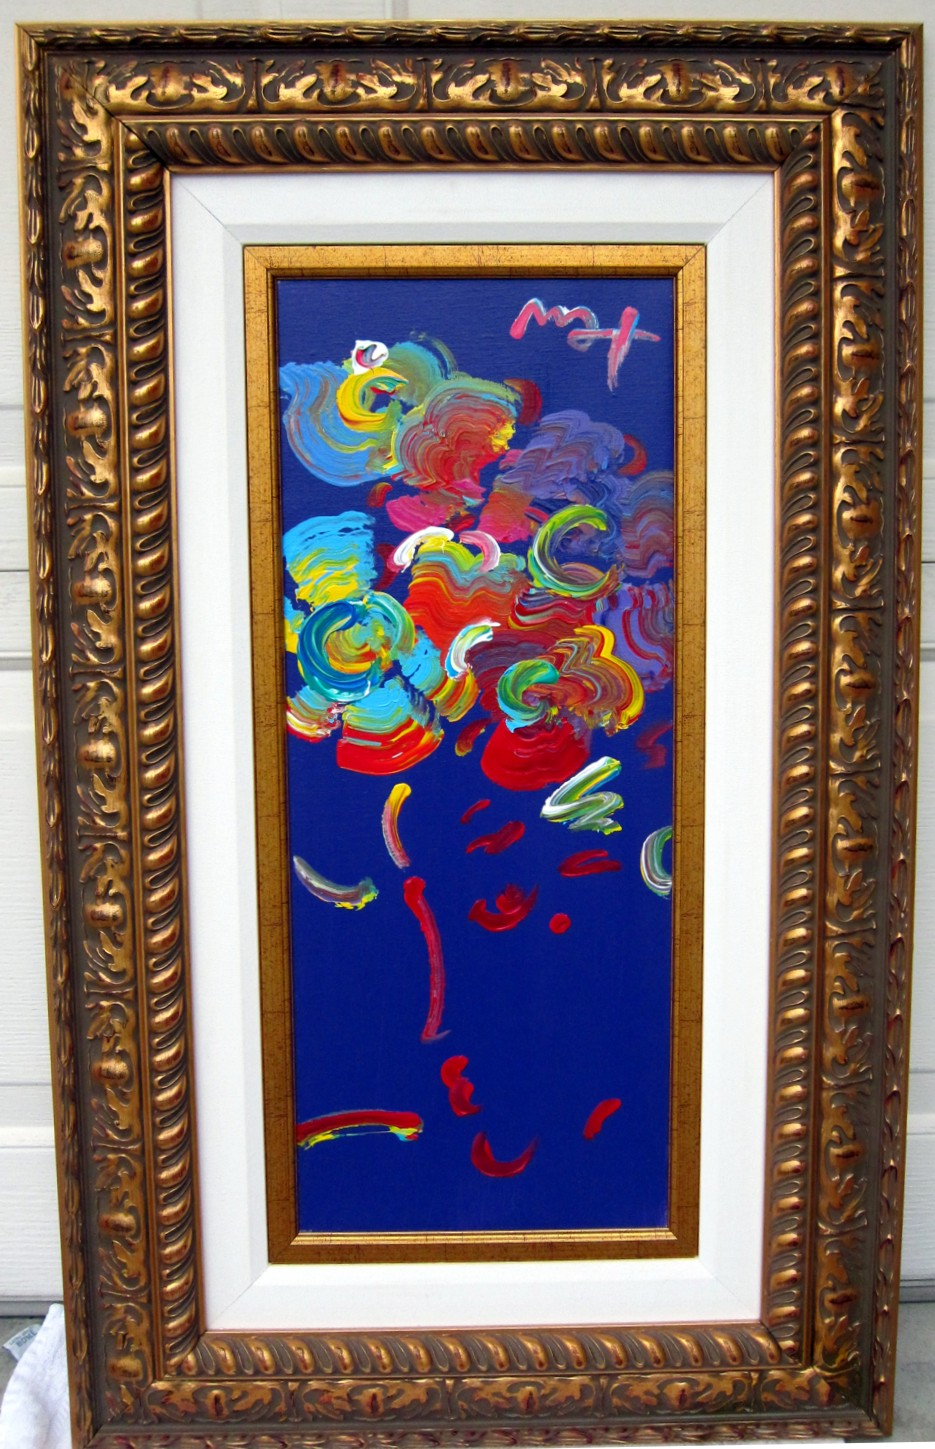 ROSEVILLE PROFILE - original painting on canvas - Fine Art by Peter Max